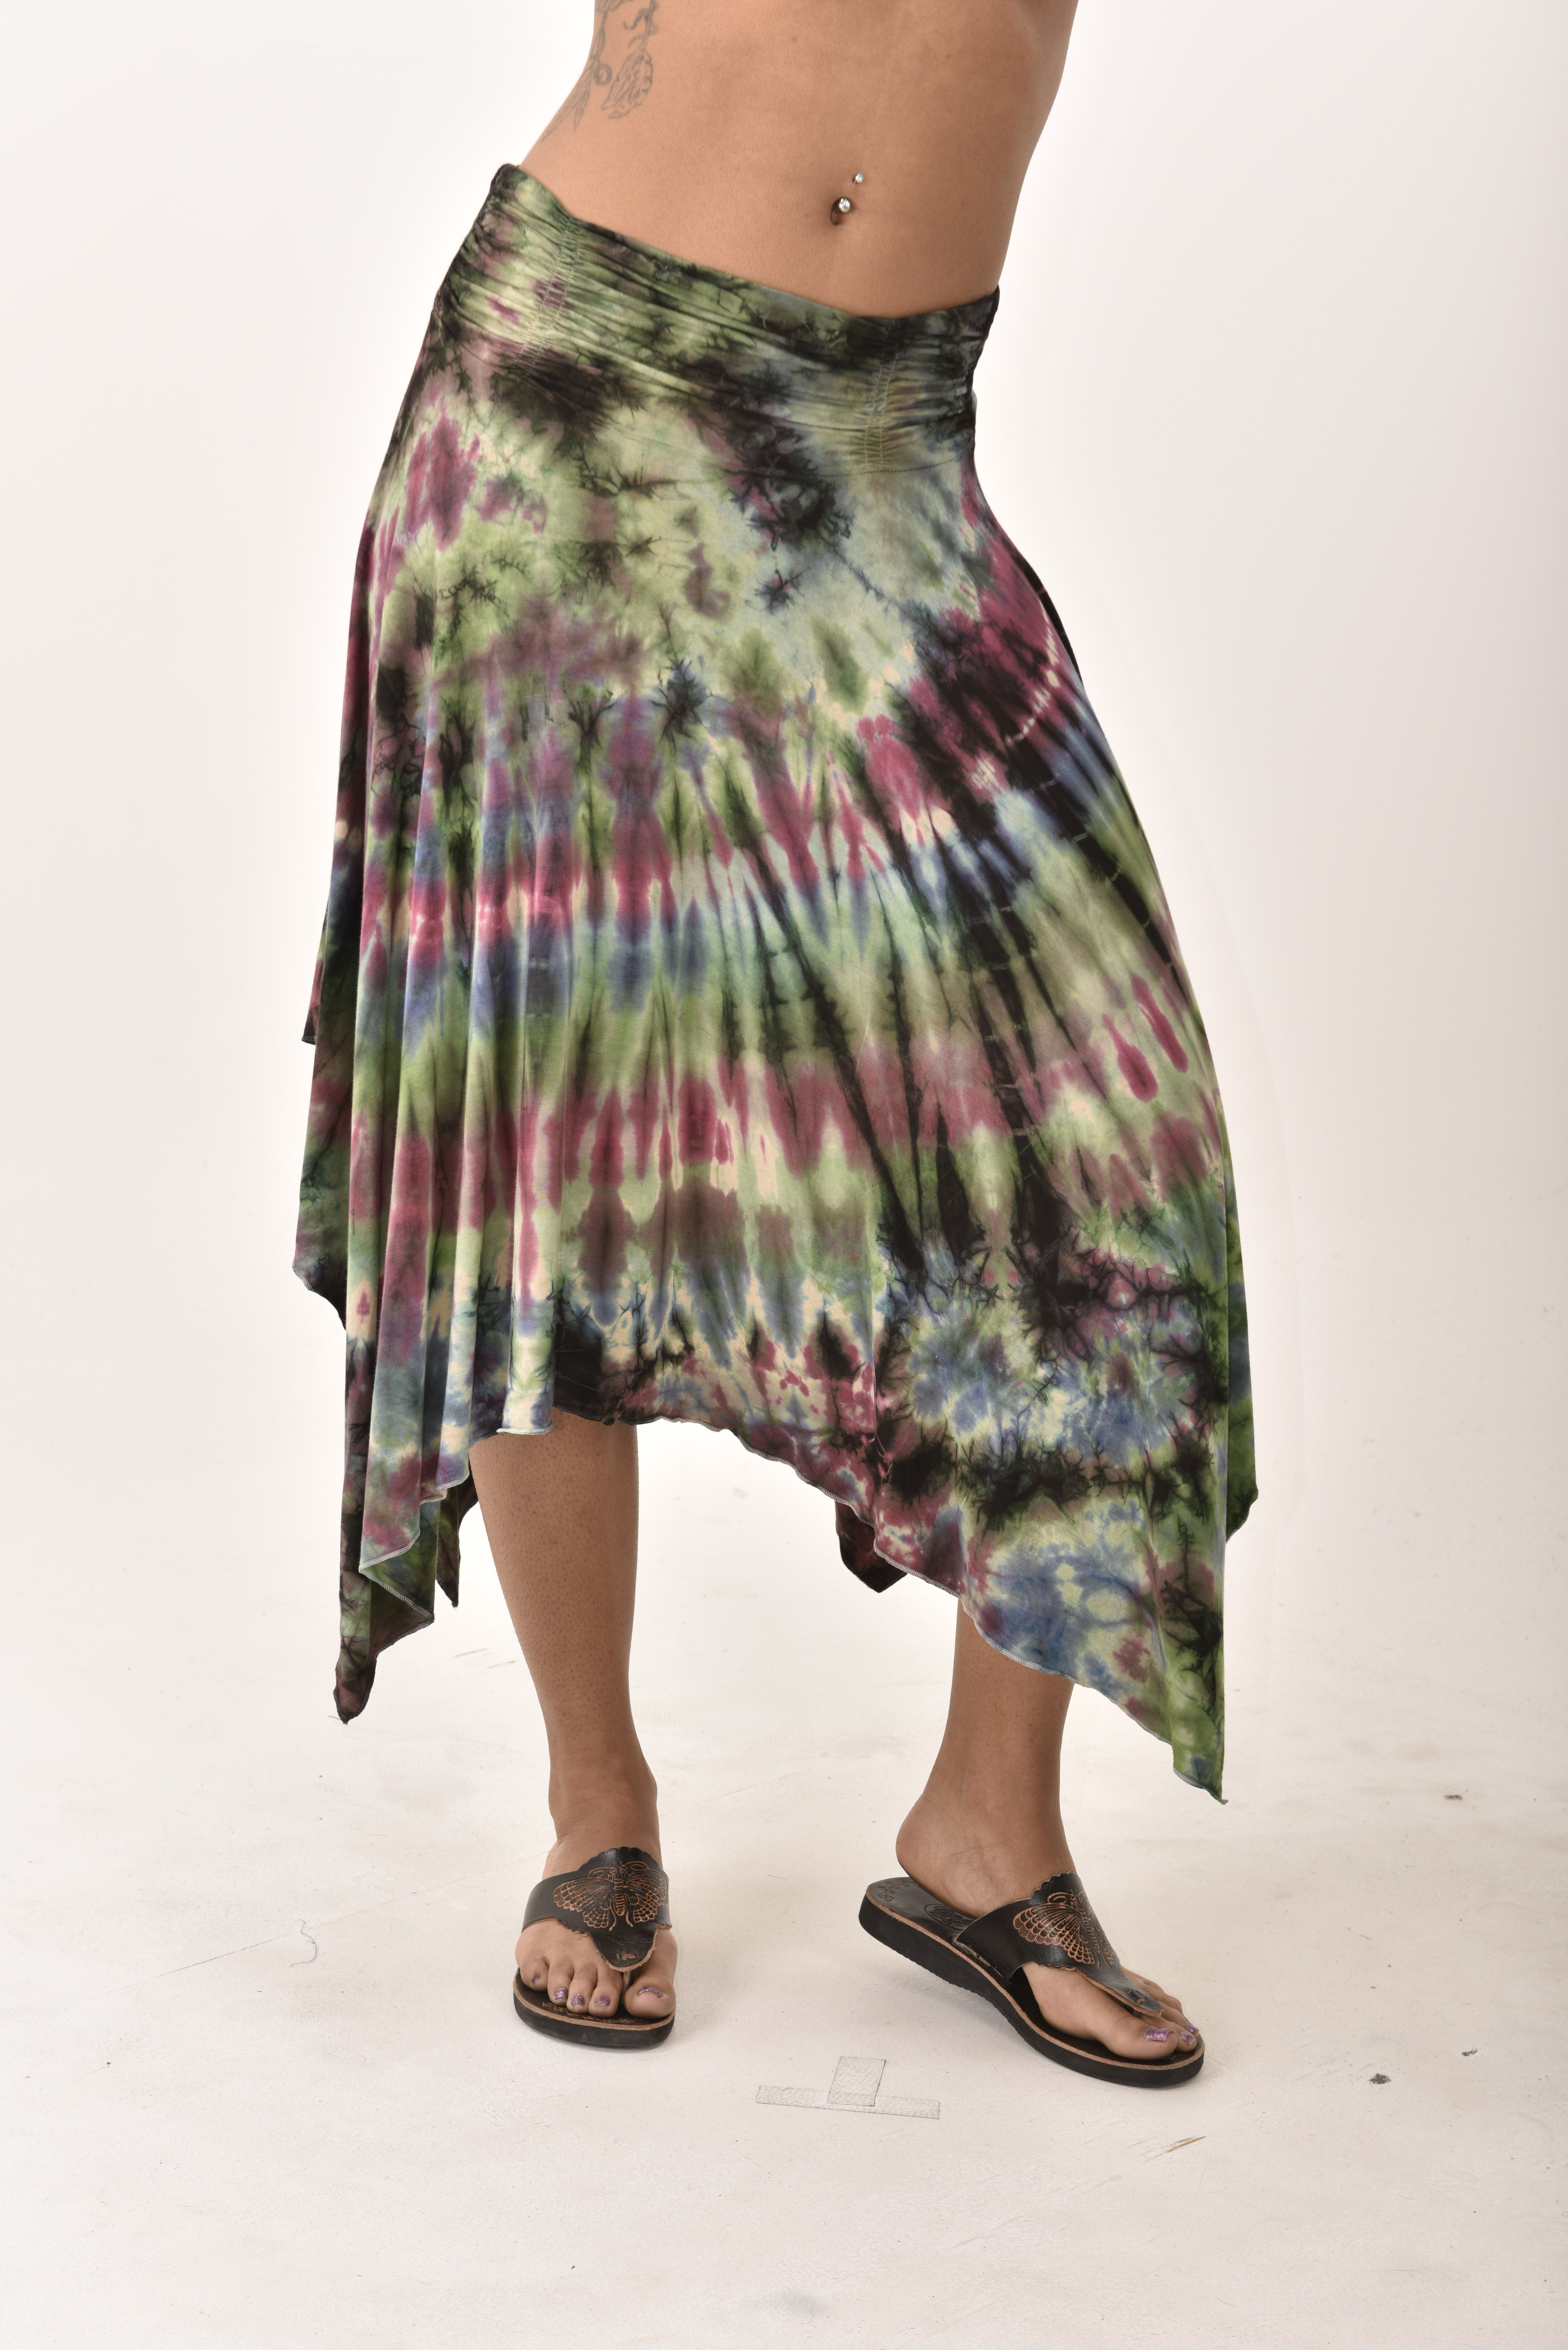 Hand Painted Tie Dye Fairy Skirt  Blue Berry